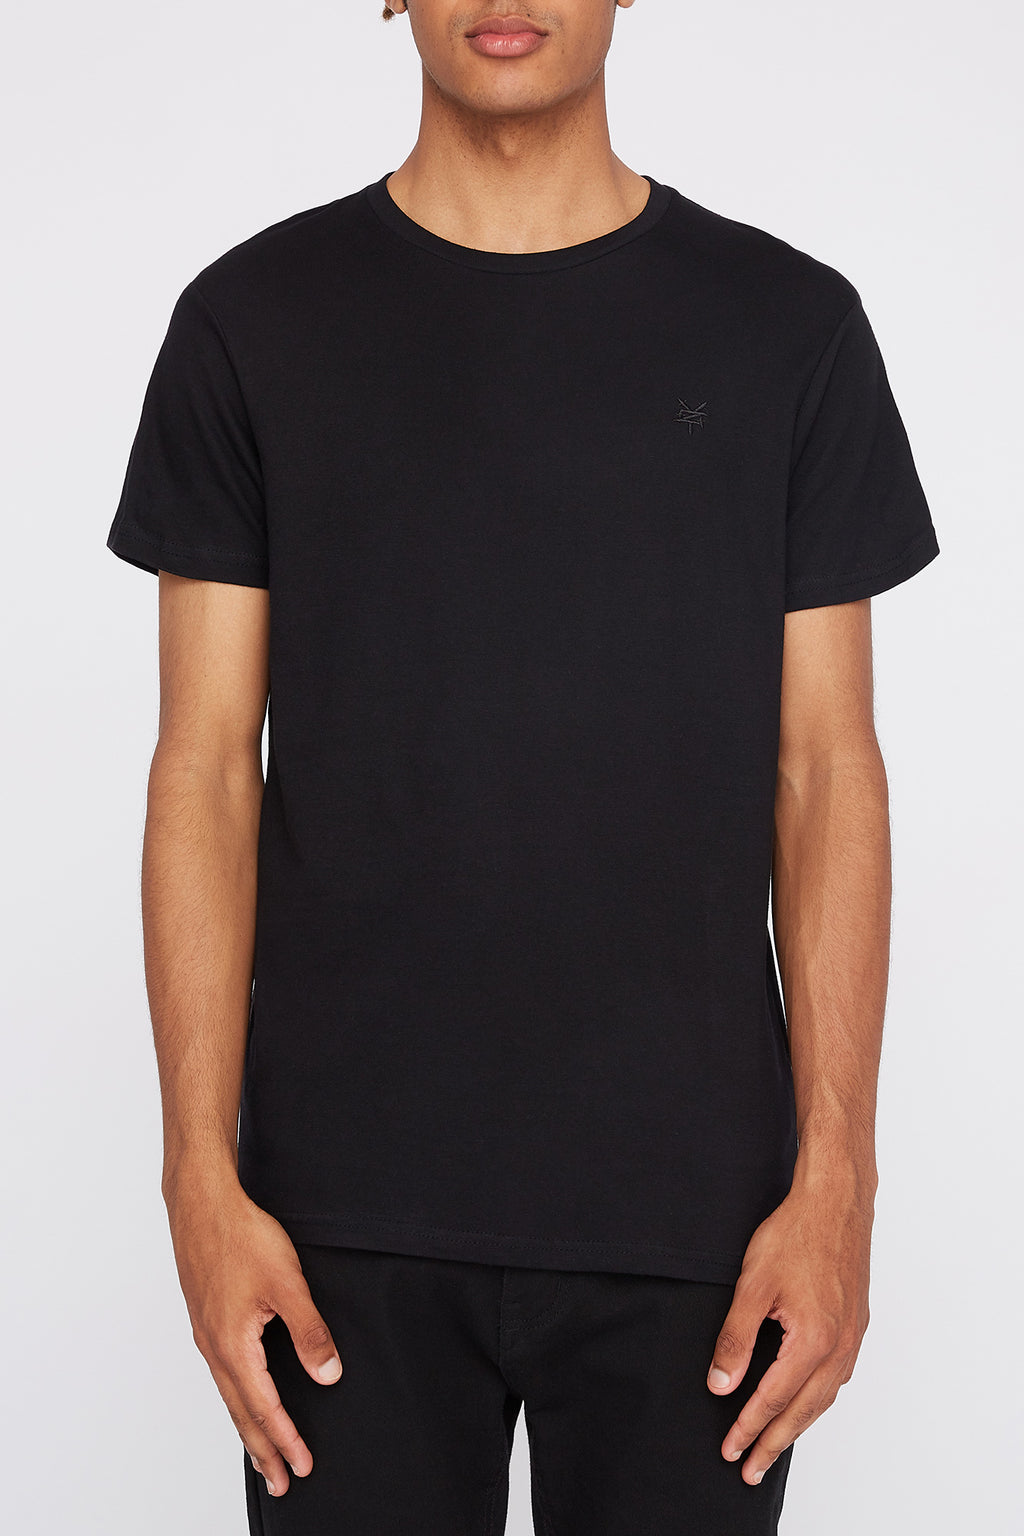 Zoo York Mens Embroidered Logo T-Shirt